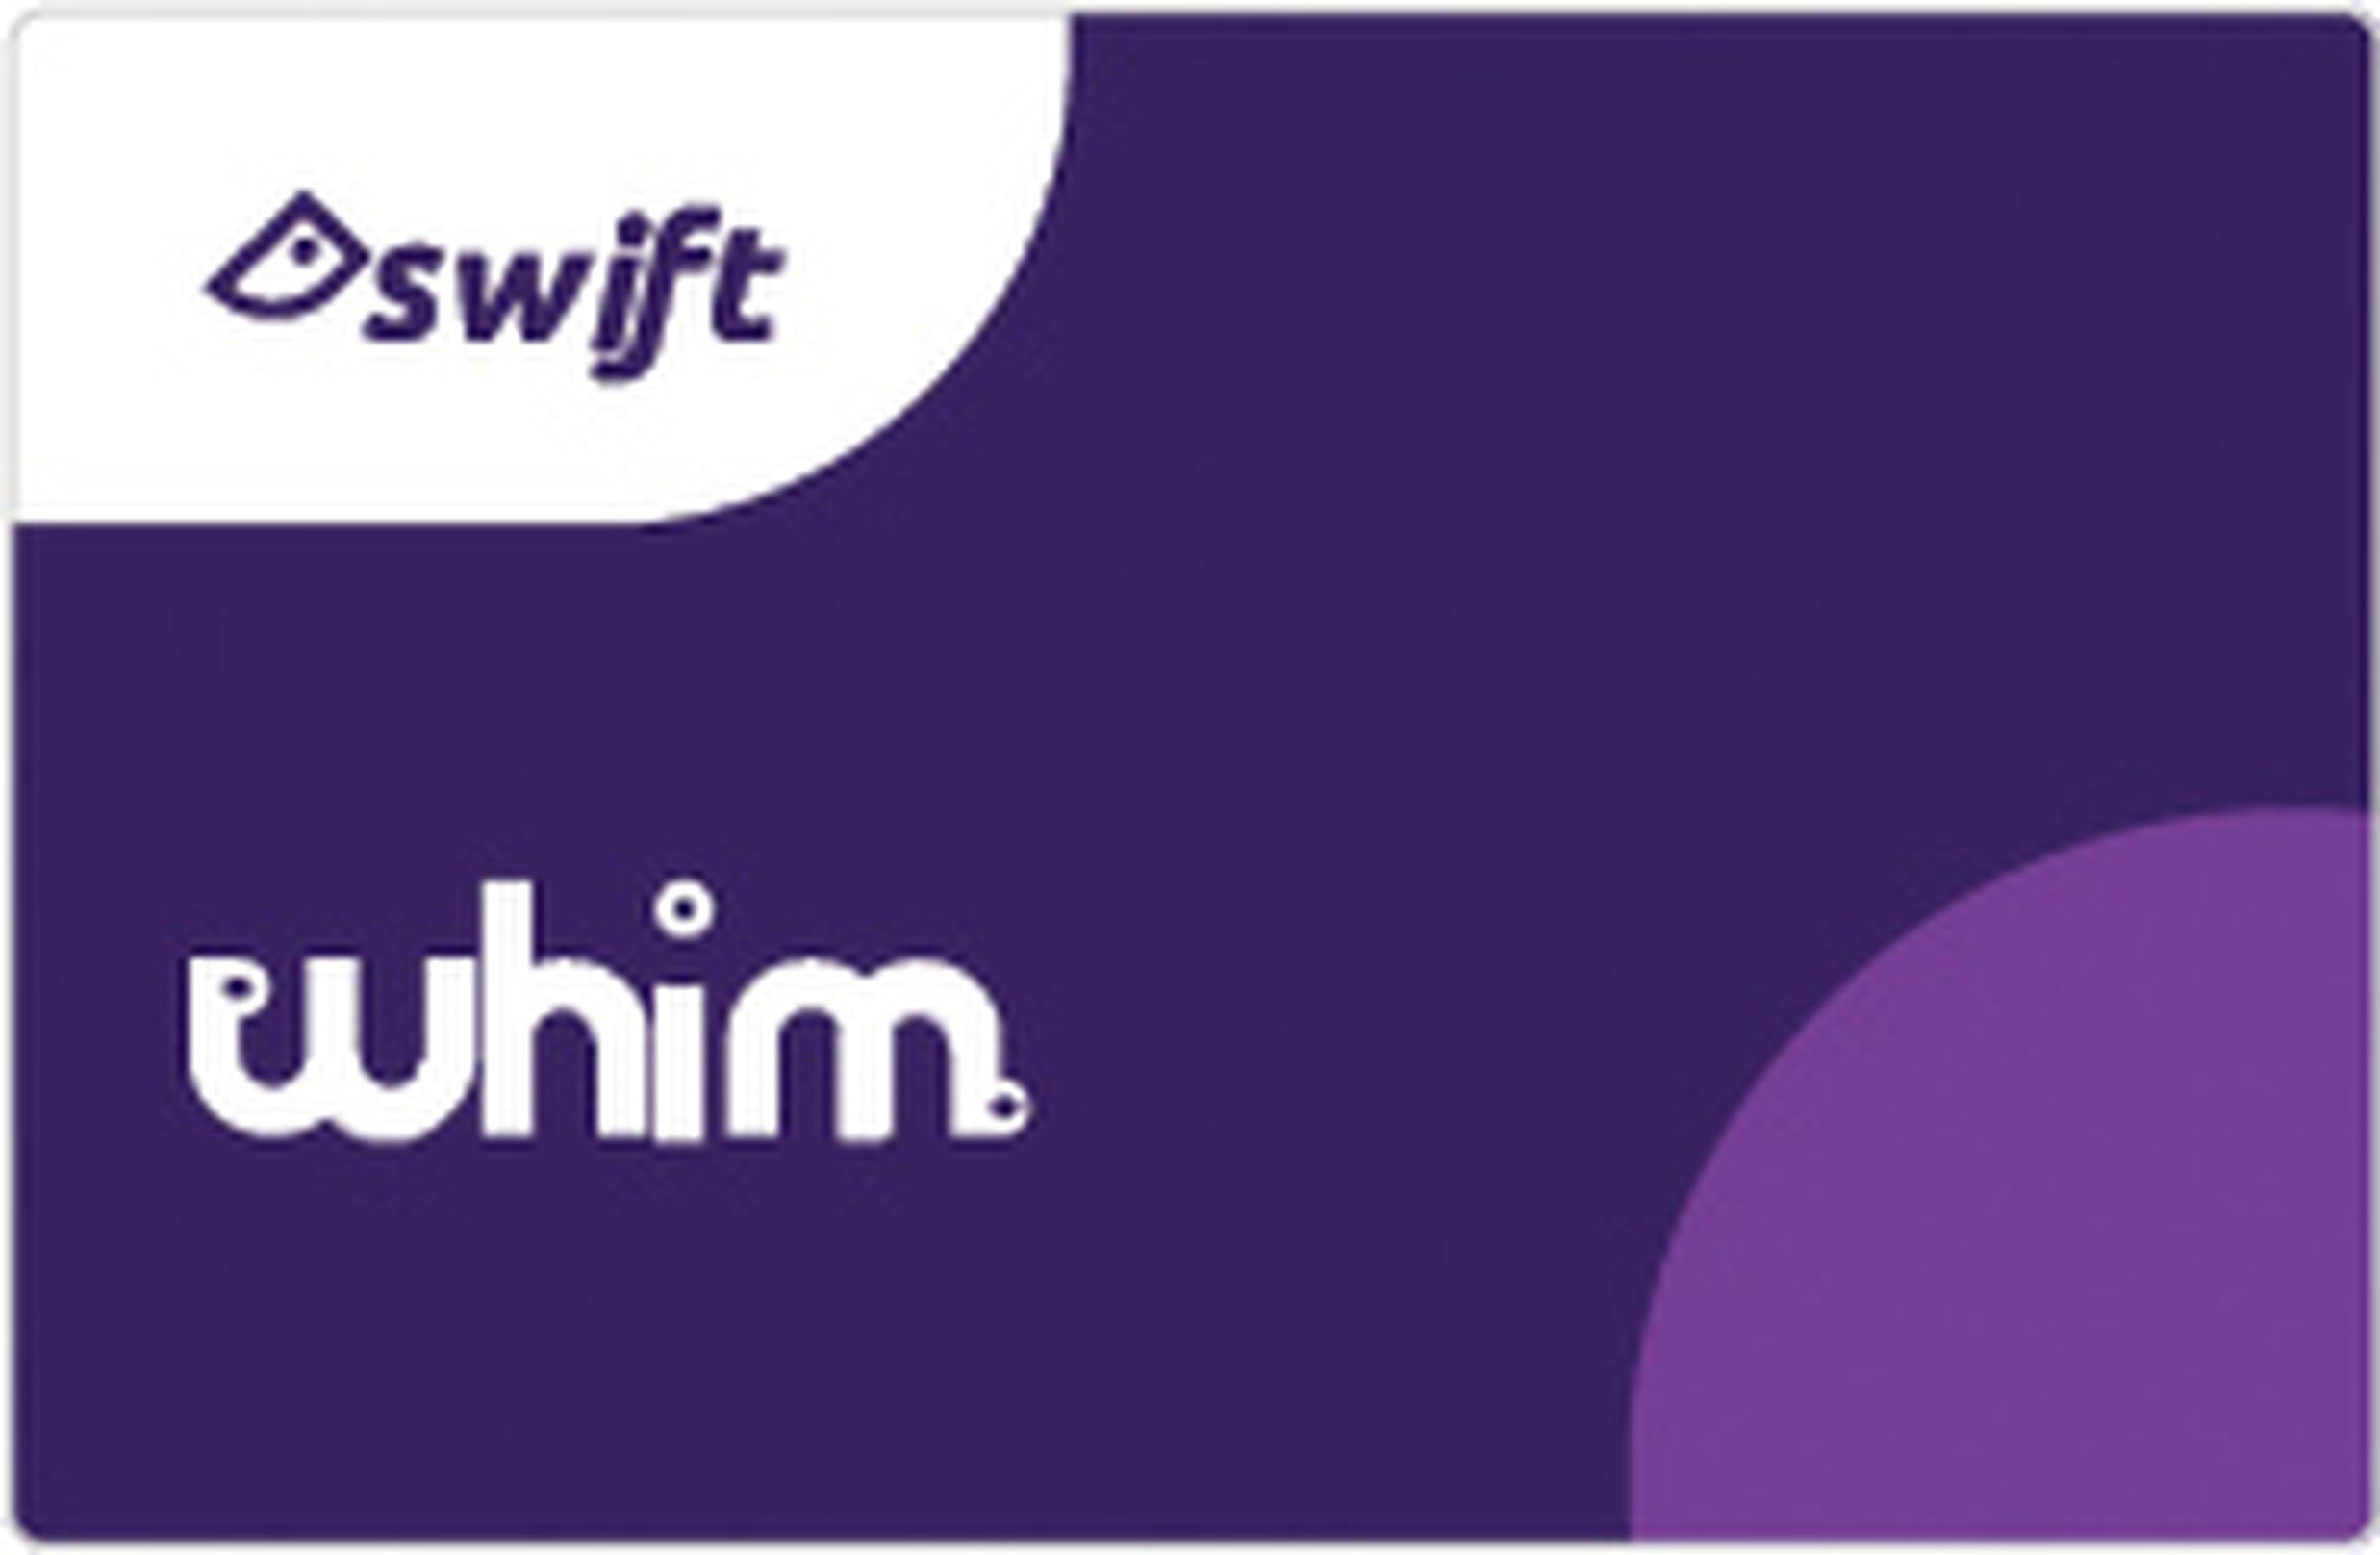 Whim subscribers will receive a Swift smartcard for use on public transport and bike hire